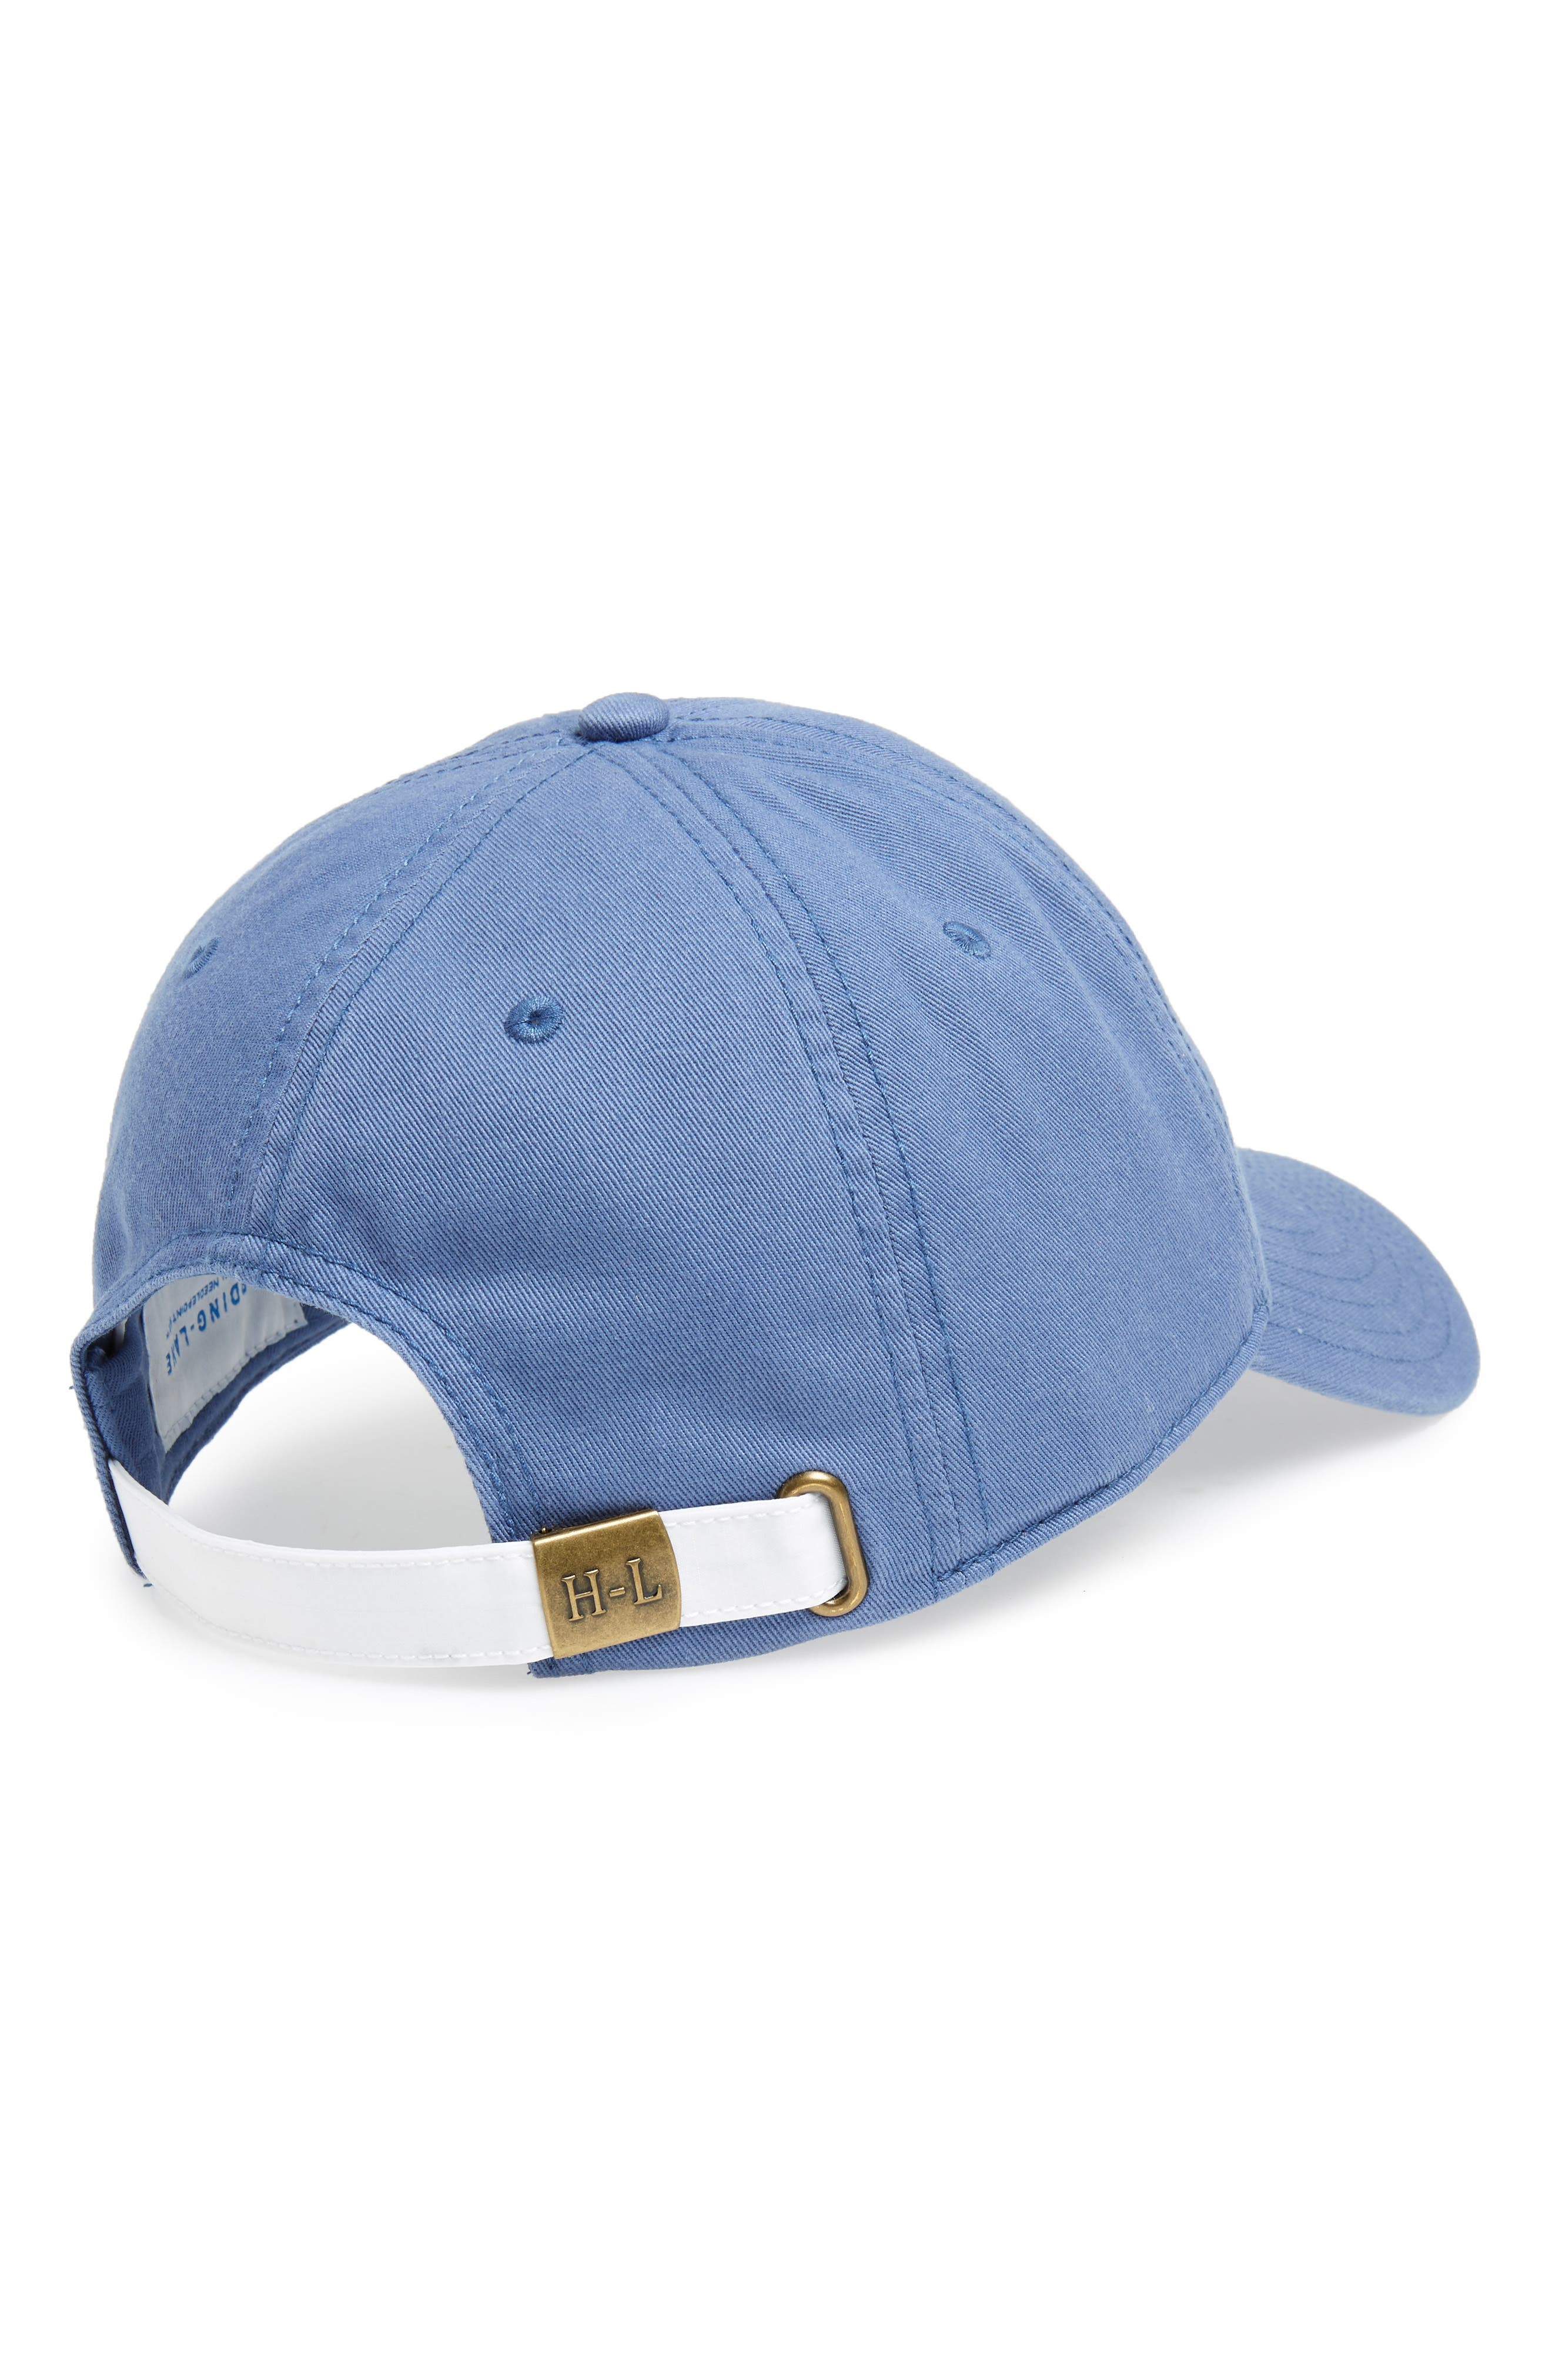 Airplane Baseball Cap,                             Alternate thumbnail 2, color,                             BLUE